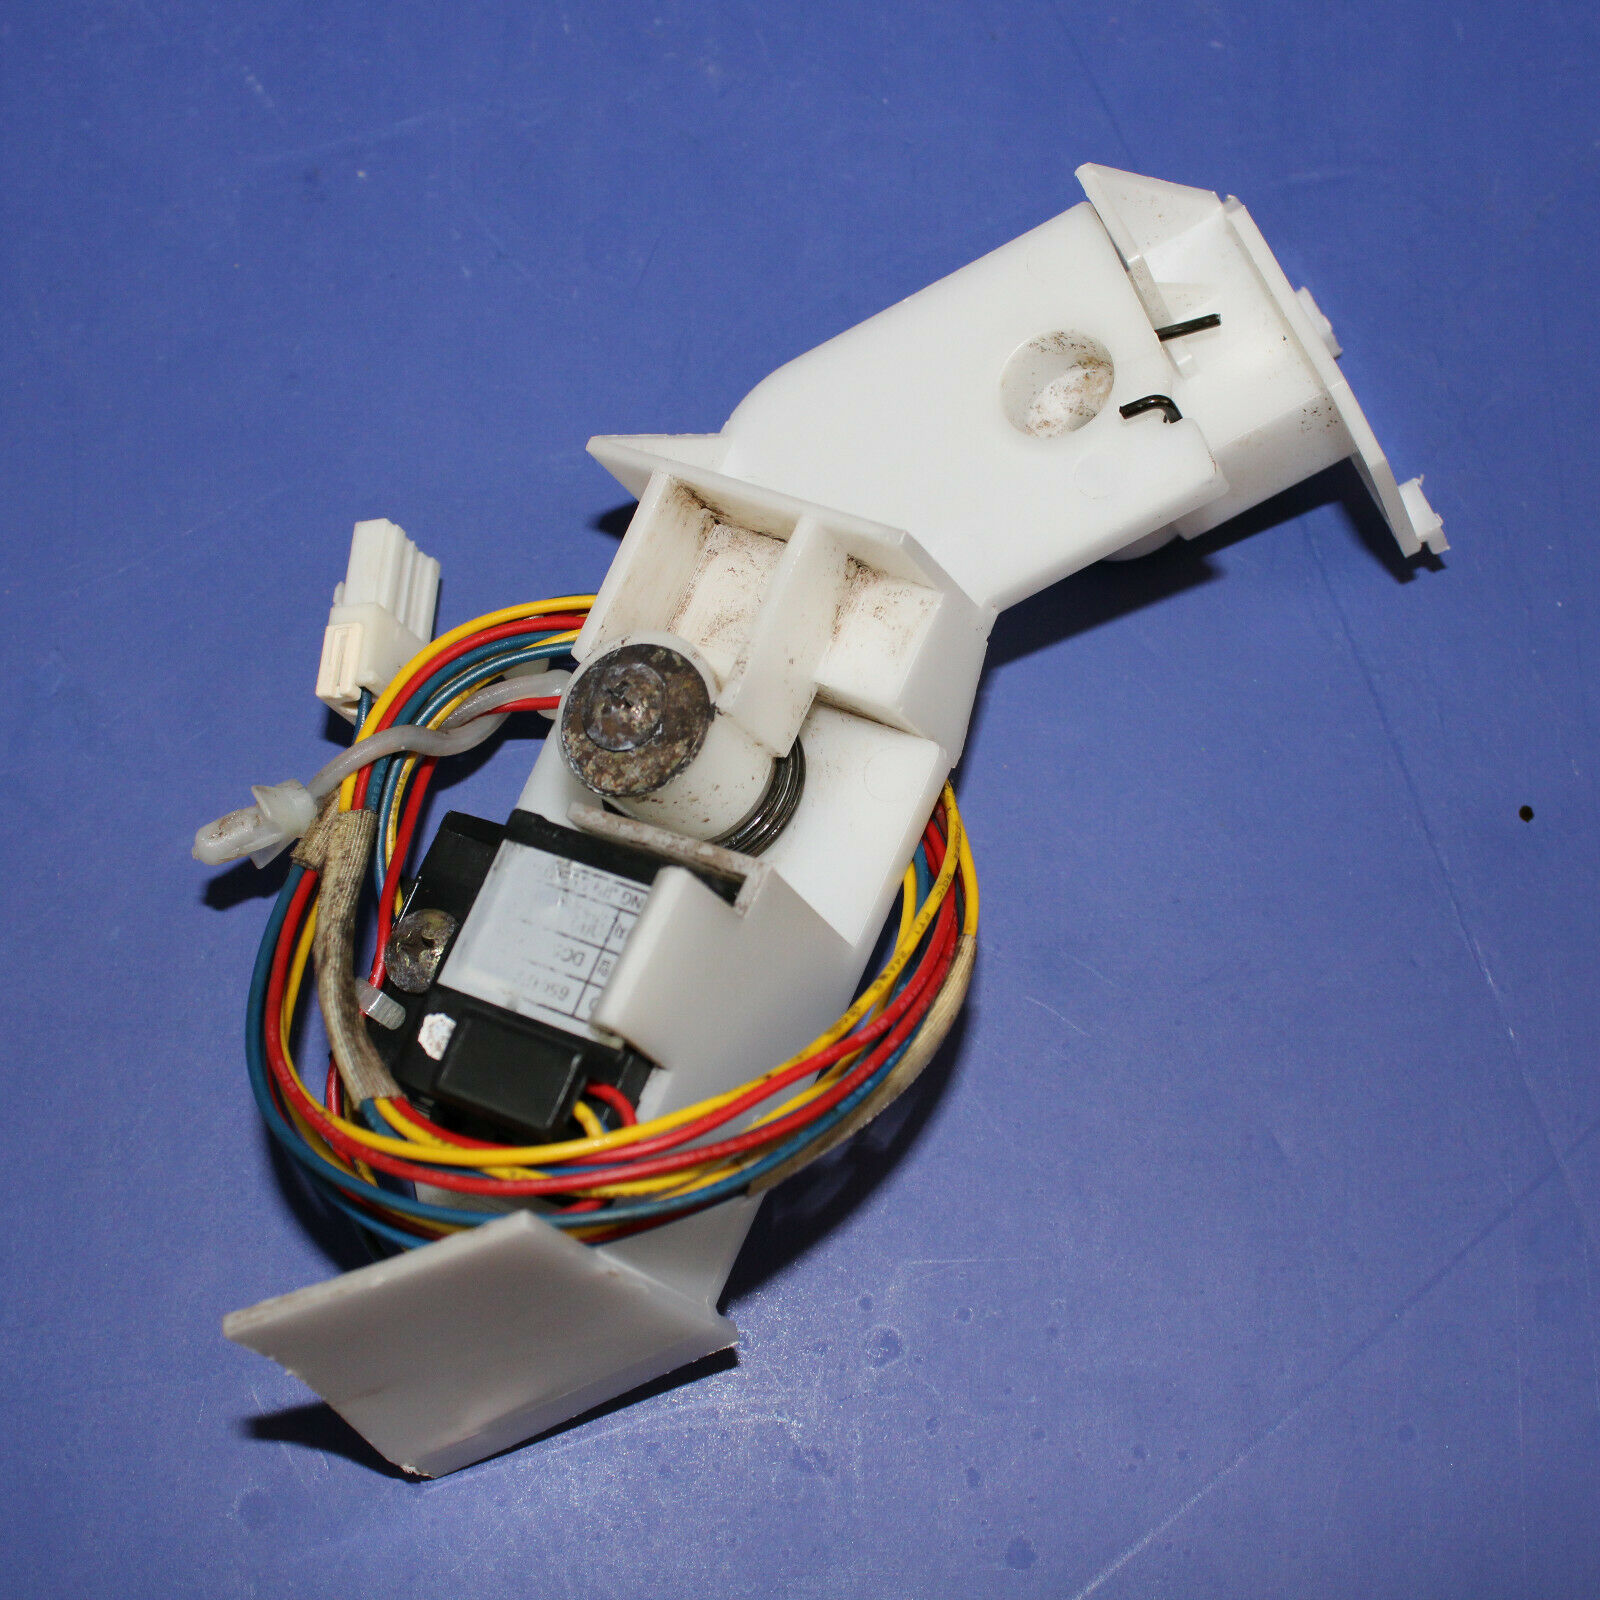 Primary image for LG Washer : Vibration / Out Of Balance Sensor (4811ER3001A) {P4839}